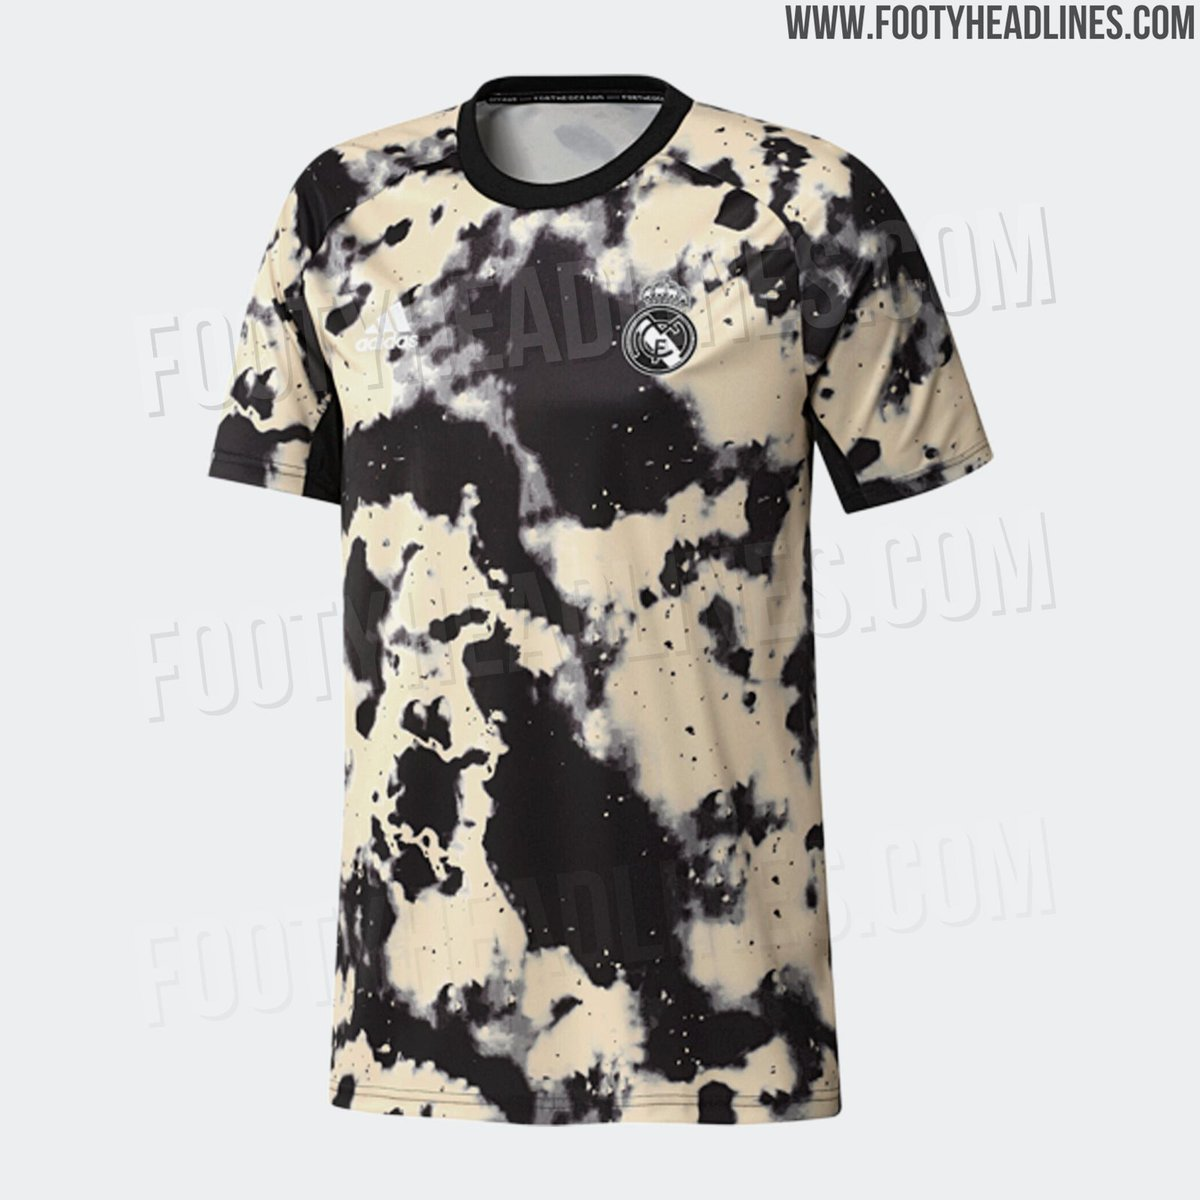 Camiseta Real Madrid entrenamiento 2020